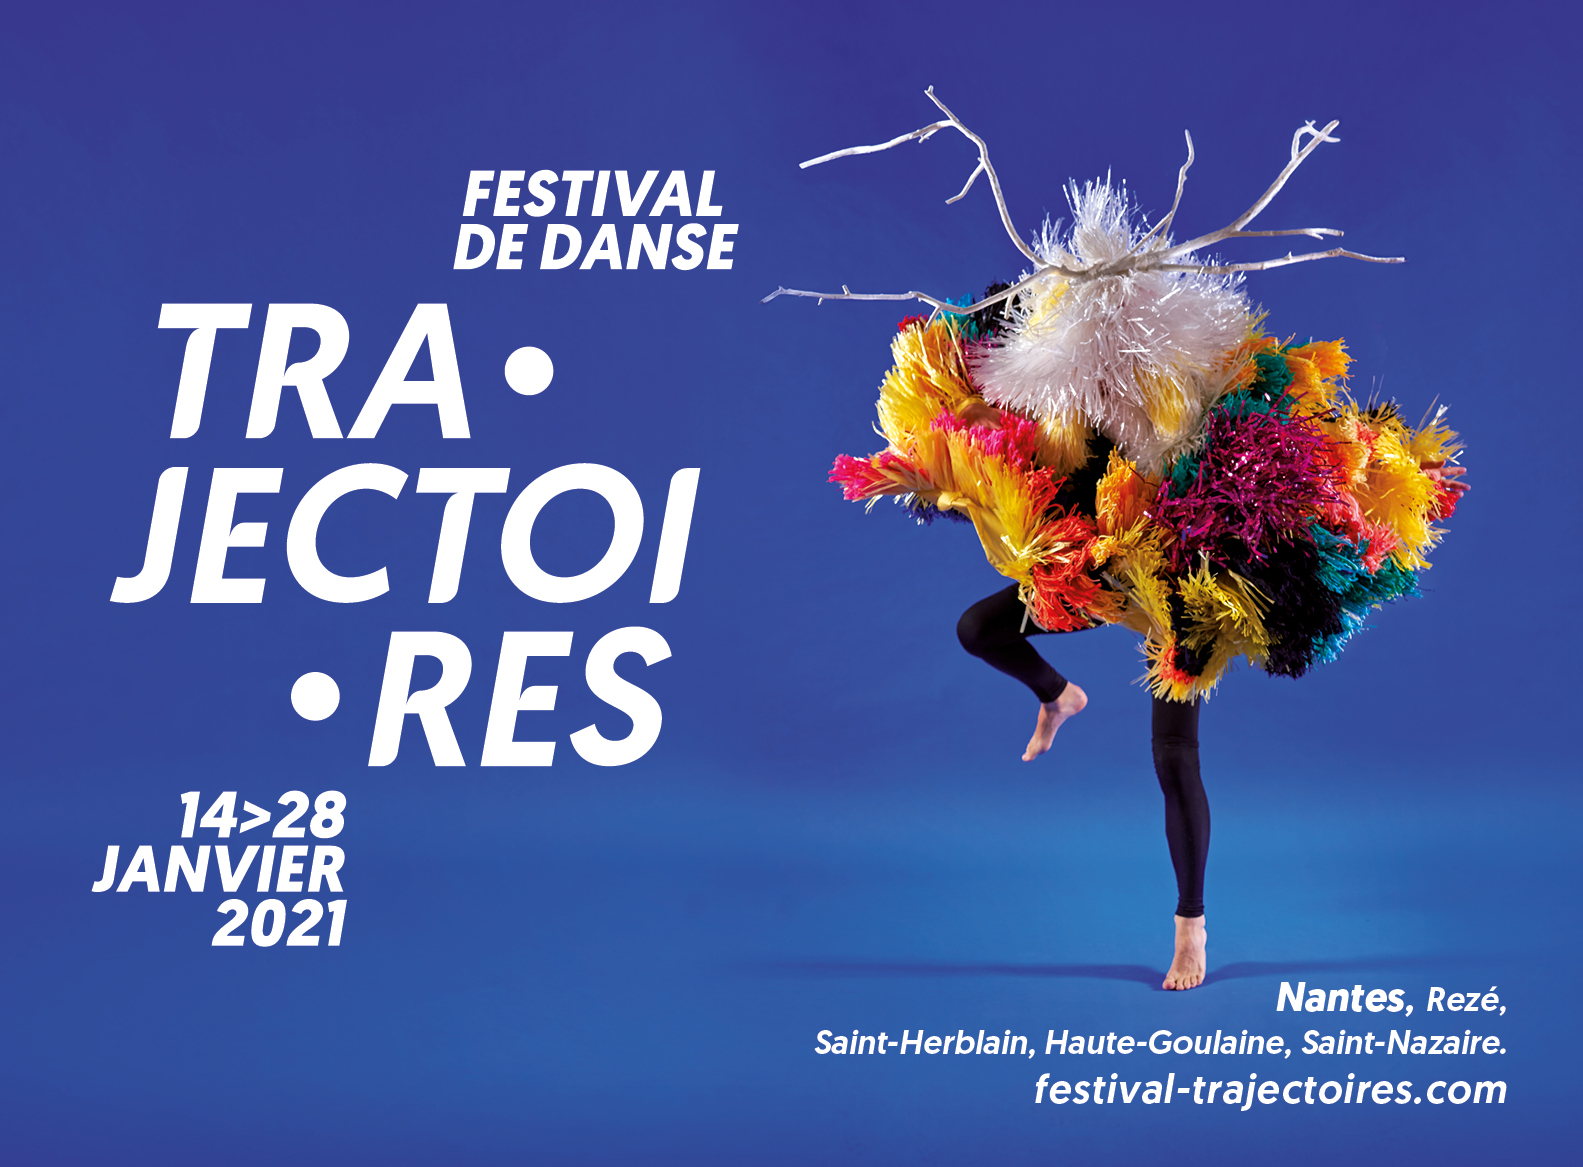 Affiche festival de danse fond bleu